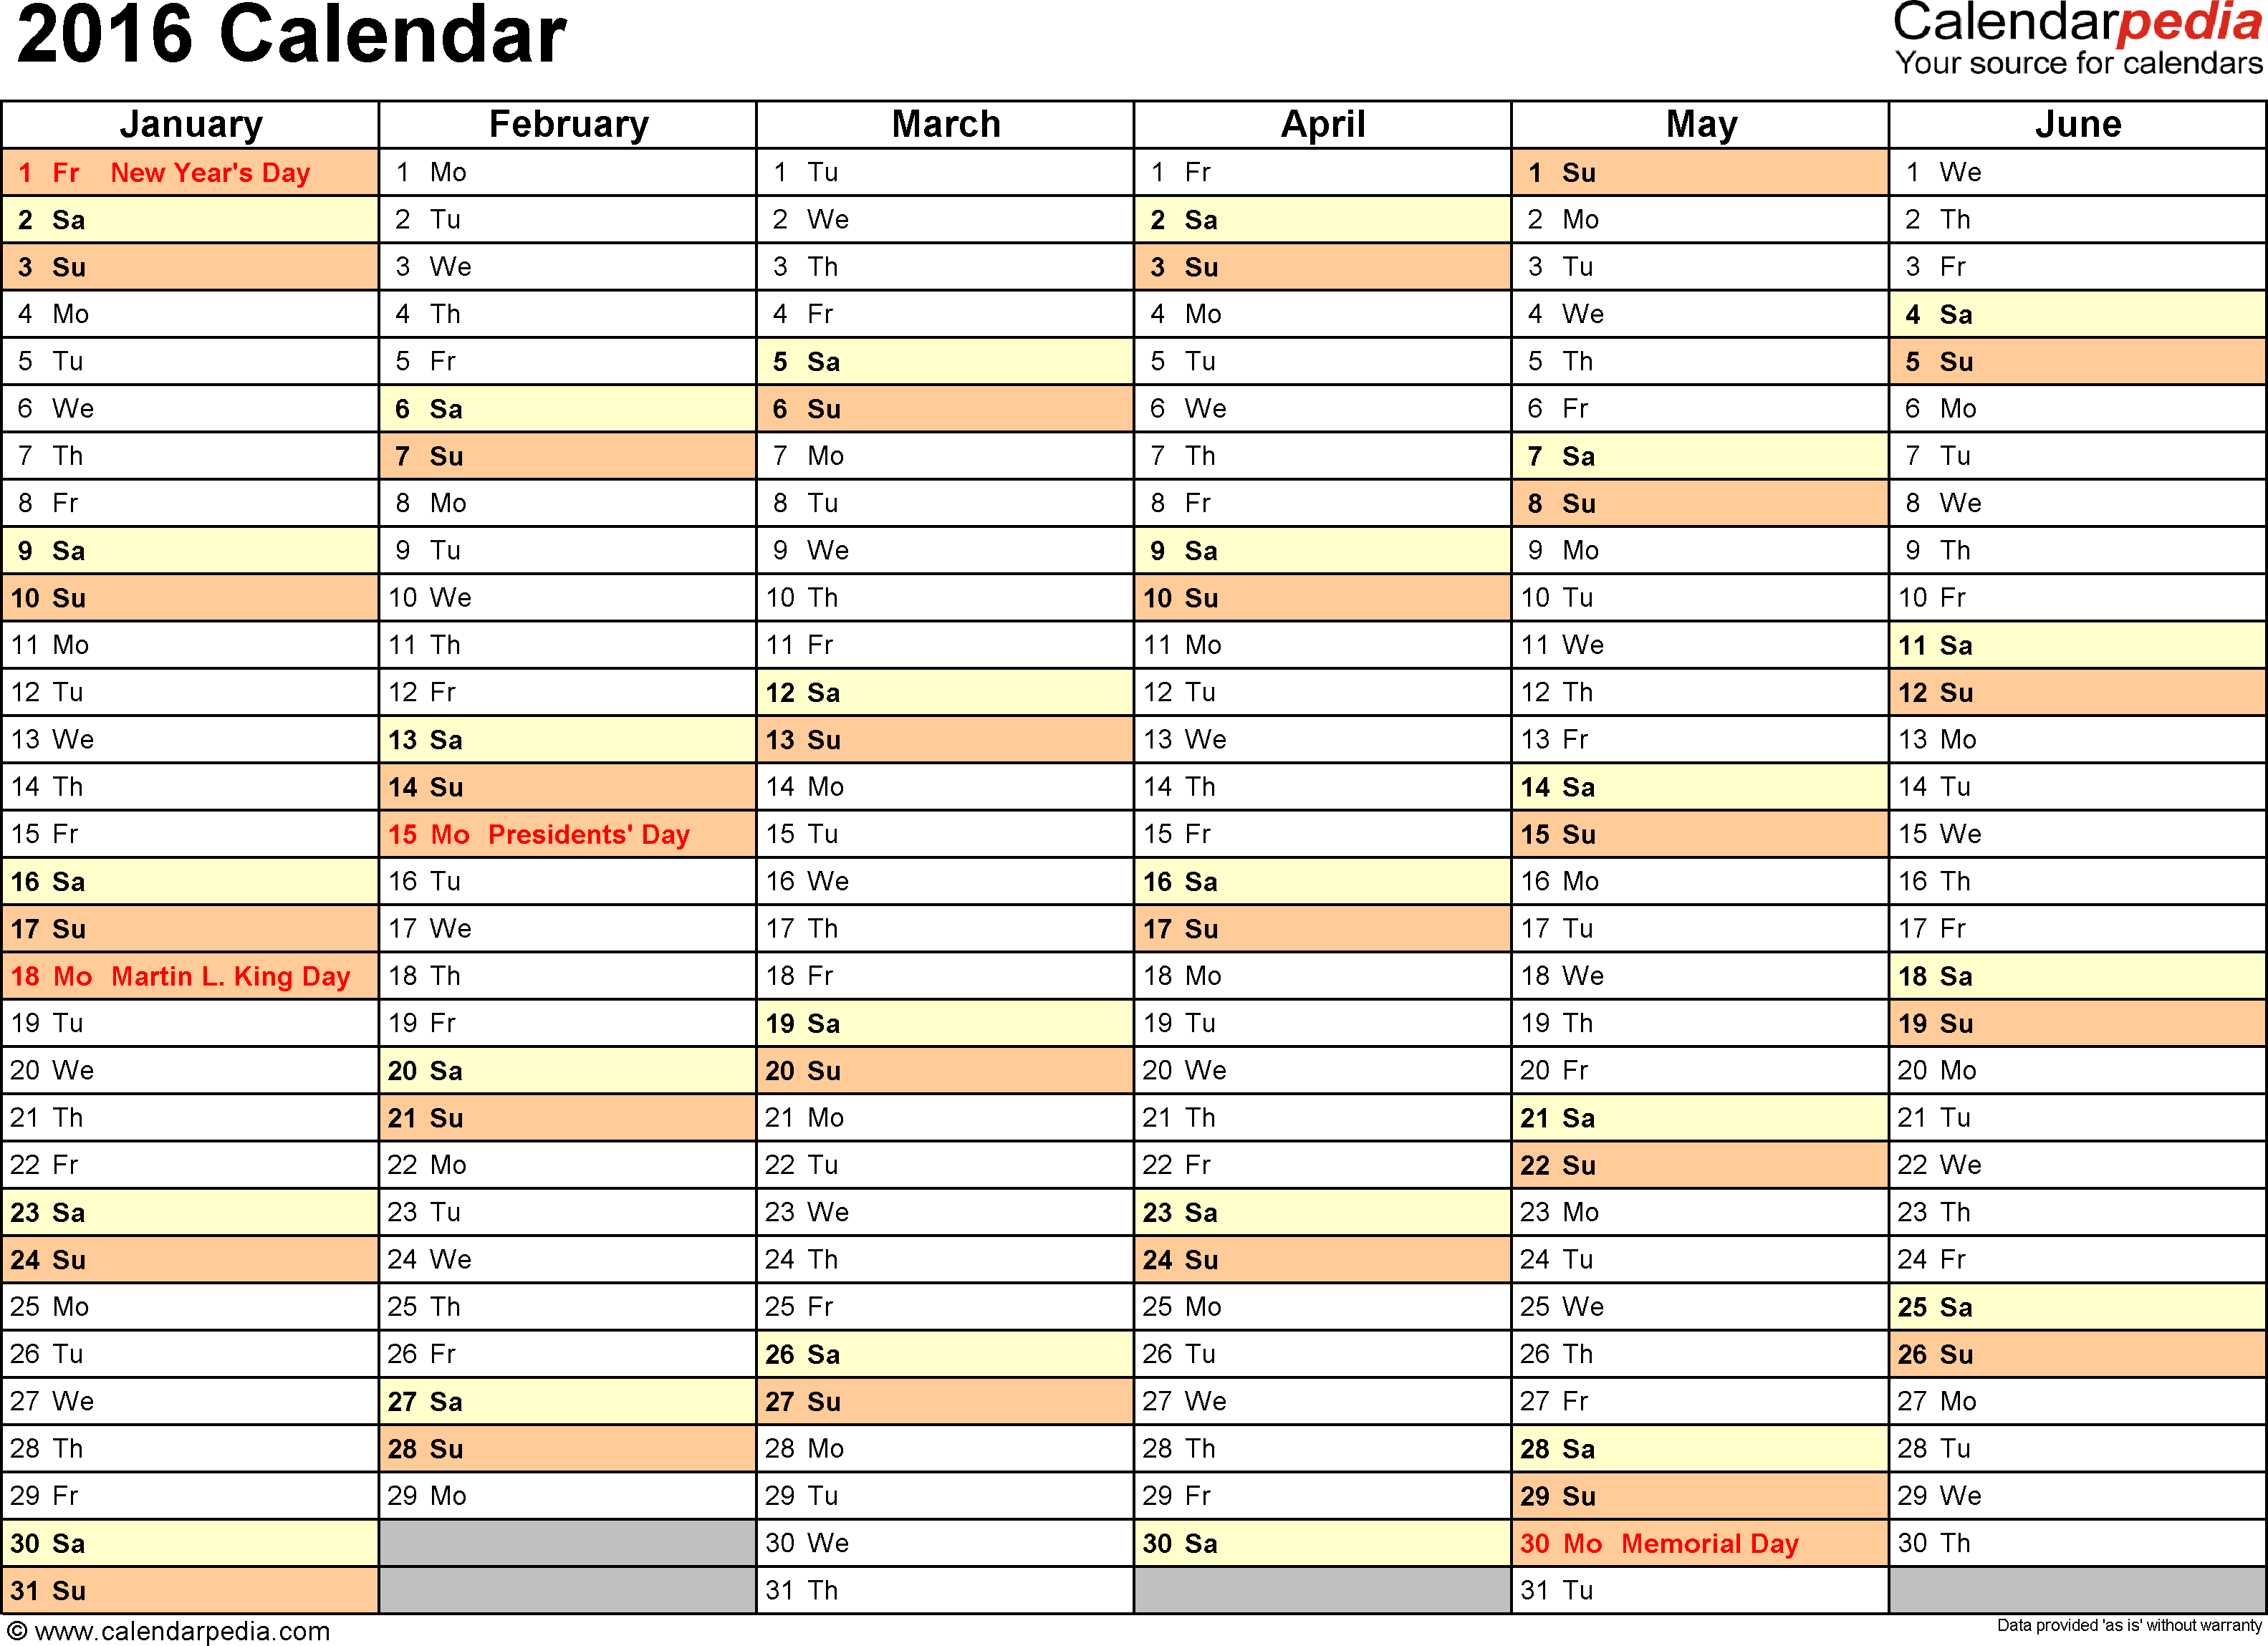 Ediblewildsus  Pretty  Calendar  Download  Free Printable Excel Templates Xls With Licious Template   Calendar For Excel Months Horizontally  Pages Landscape Orientation With Beauteous Absolute Addressing Excel Also Excel Formula To Add In Addition Repeated Measures Anova Excel And Excel Statement As Well As Combine Excel Worksheets Into One Additionally Excel Mail Merge  From Calendarpediacom With Ediblewildsus  Licious  Calendar  Download  Free Printable Excel Templates Xls With Beauteous Template   Calendar For Excel Months Horizontally  Pages Landscape Orientation And Pretty Absolute Addressing Excel Also Excel Formula To Add In Addition Repeated Measures Anova Excel From Calendarpediacom